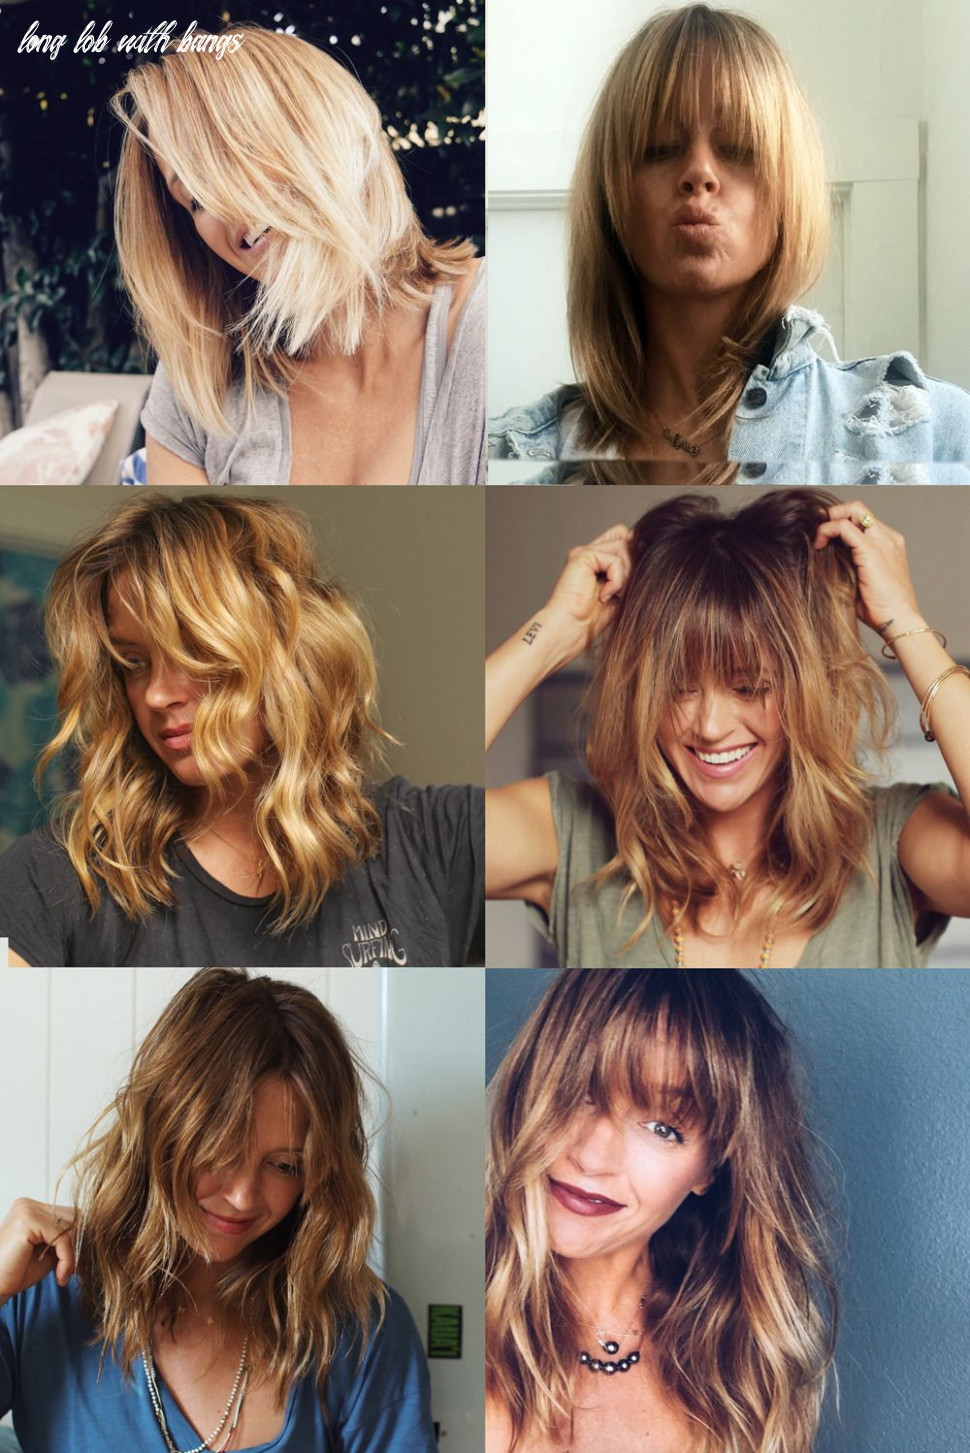 If anyone is looking for some   Lob hair with bangs, Blonde hair ...